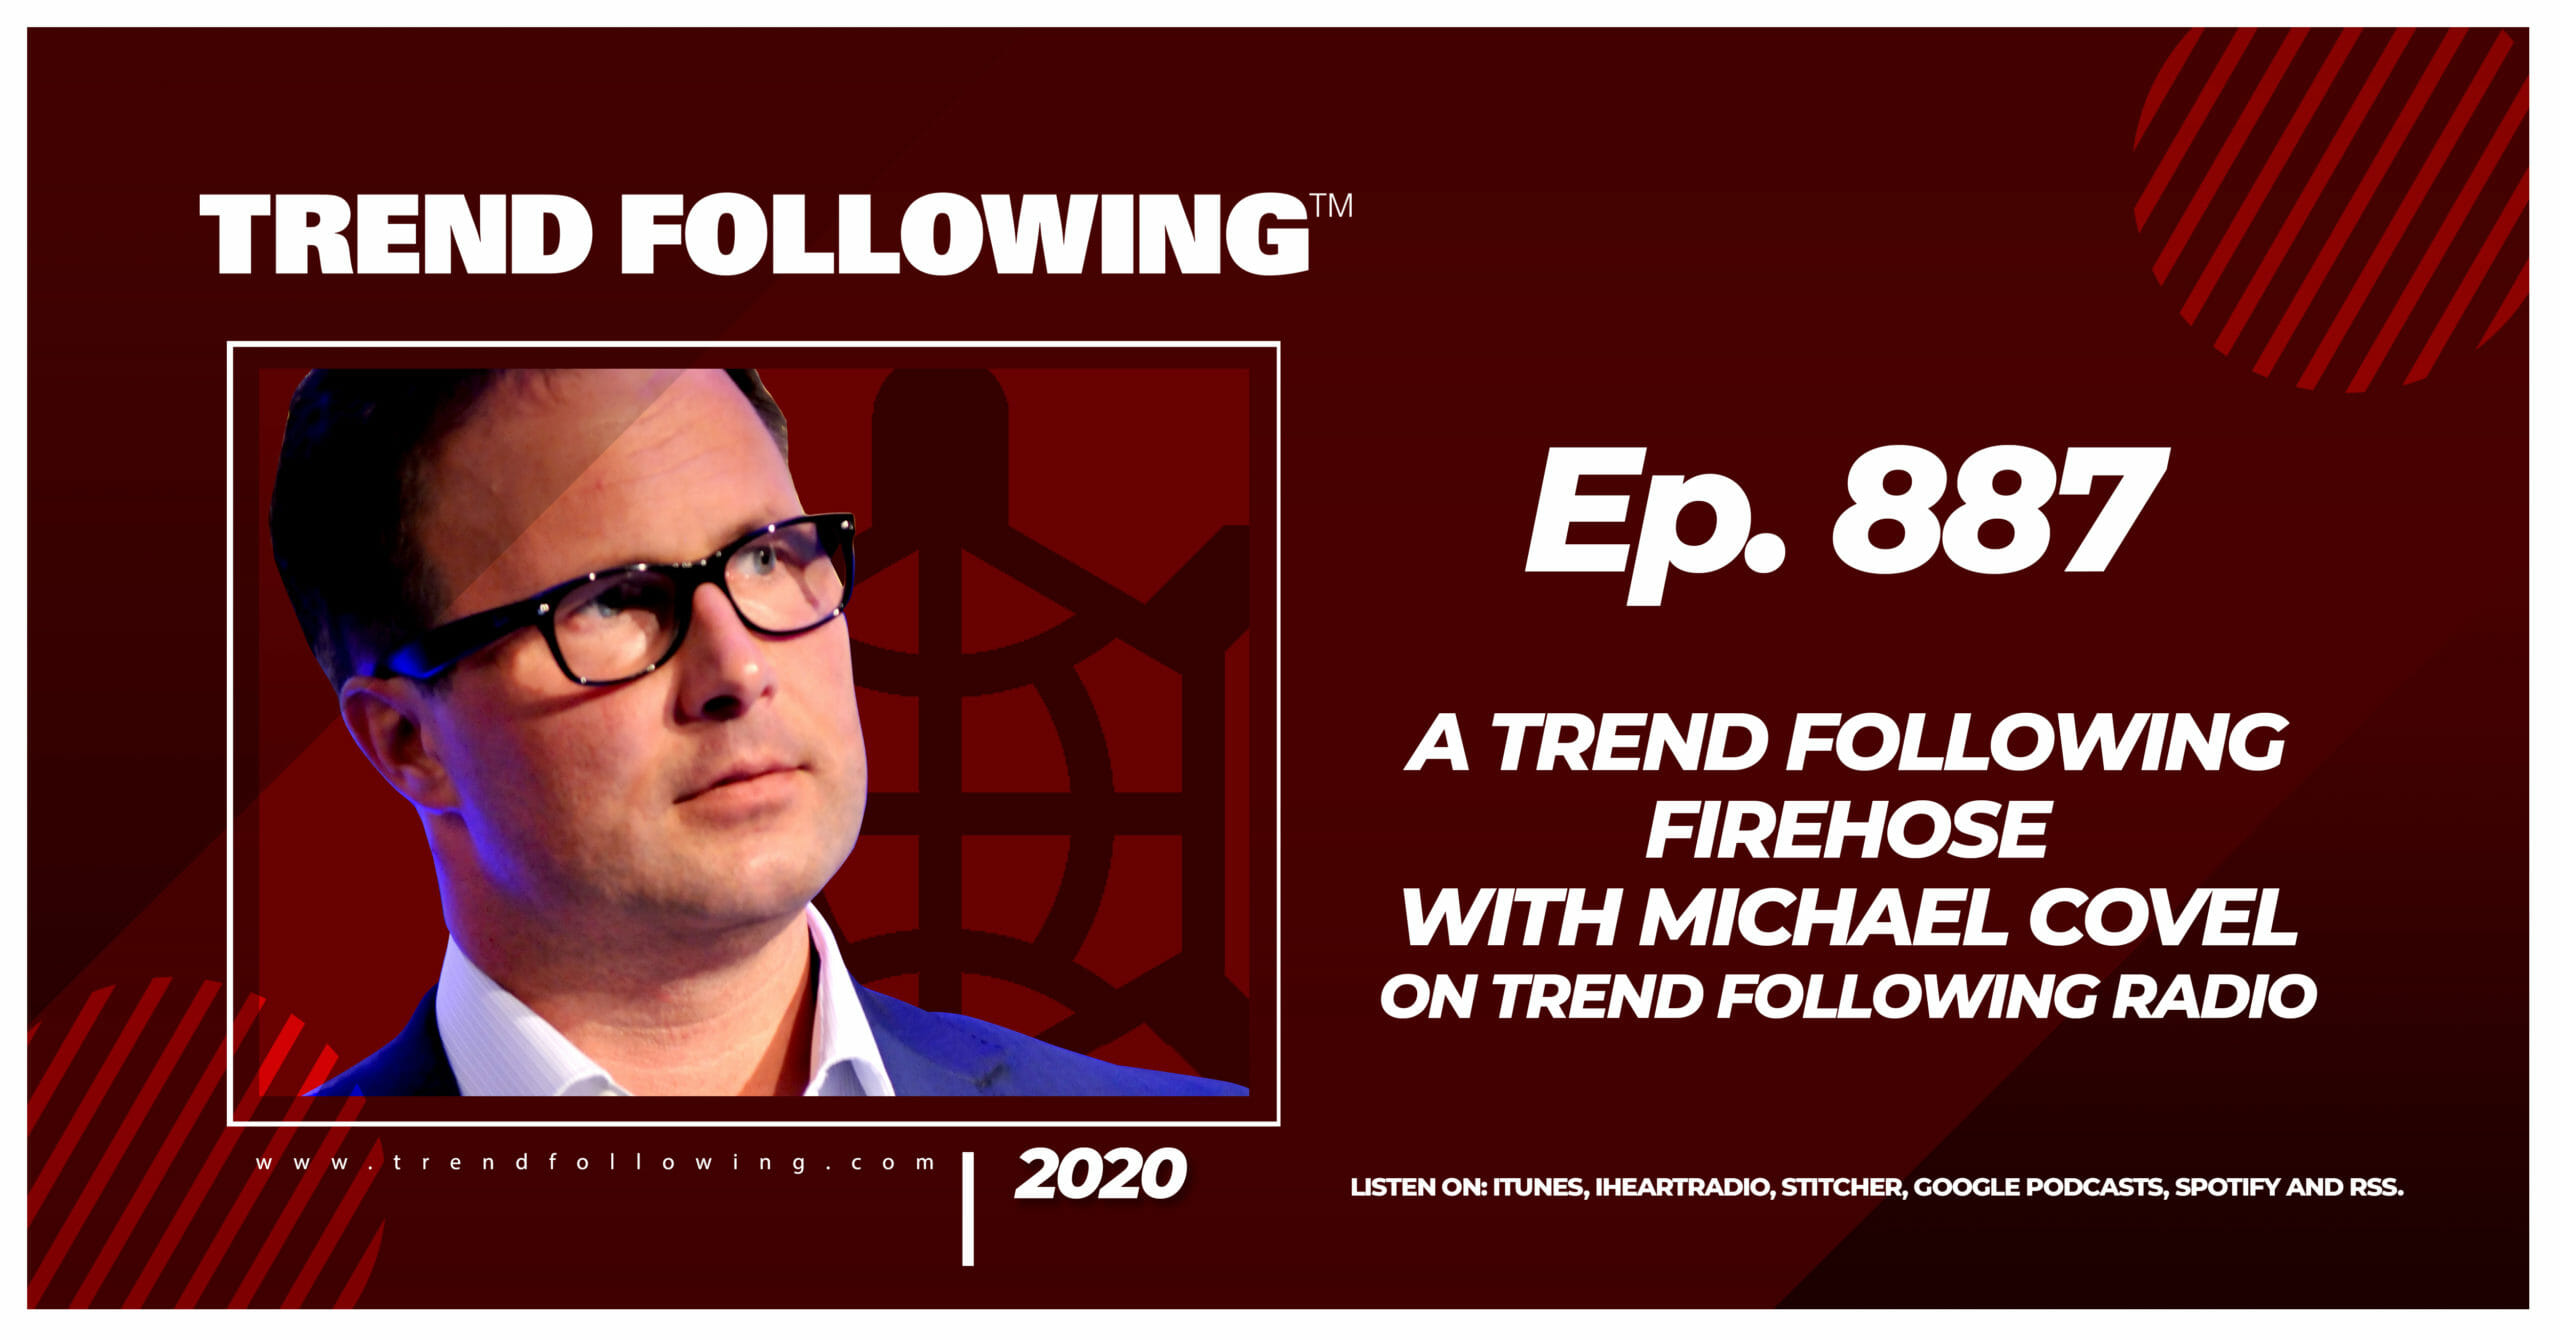 A Trend Following Firehose with Michael Covel on Trend Following Radio